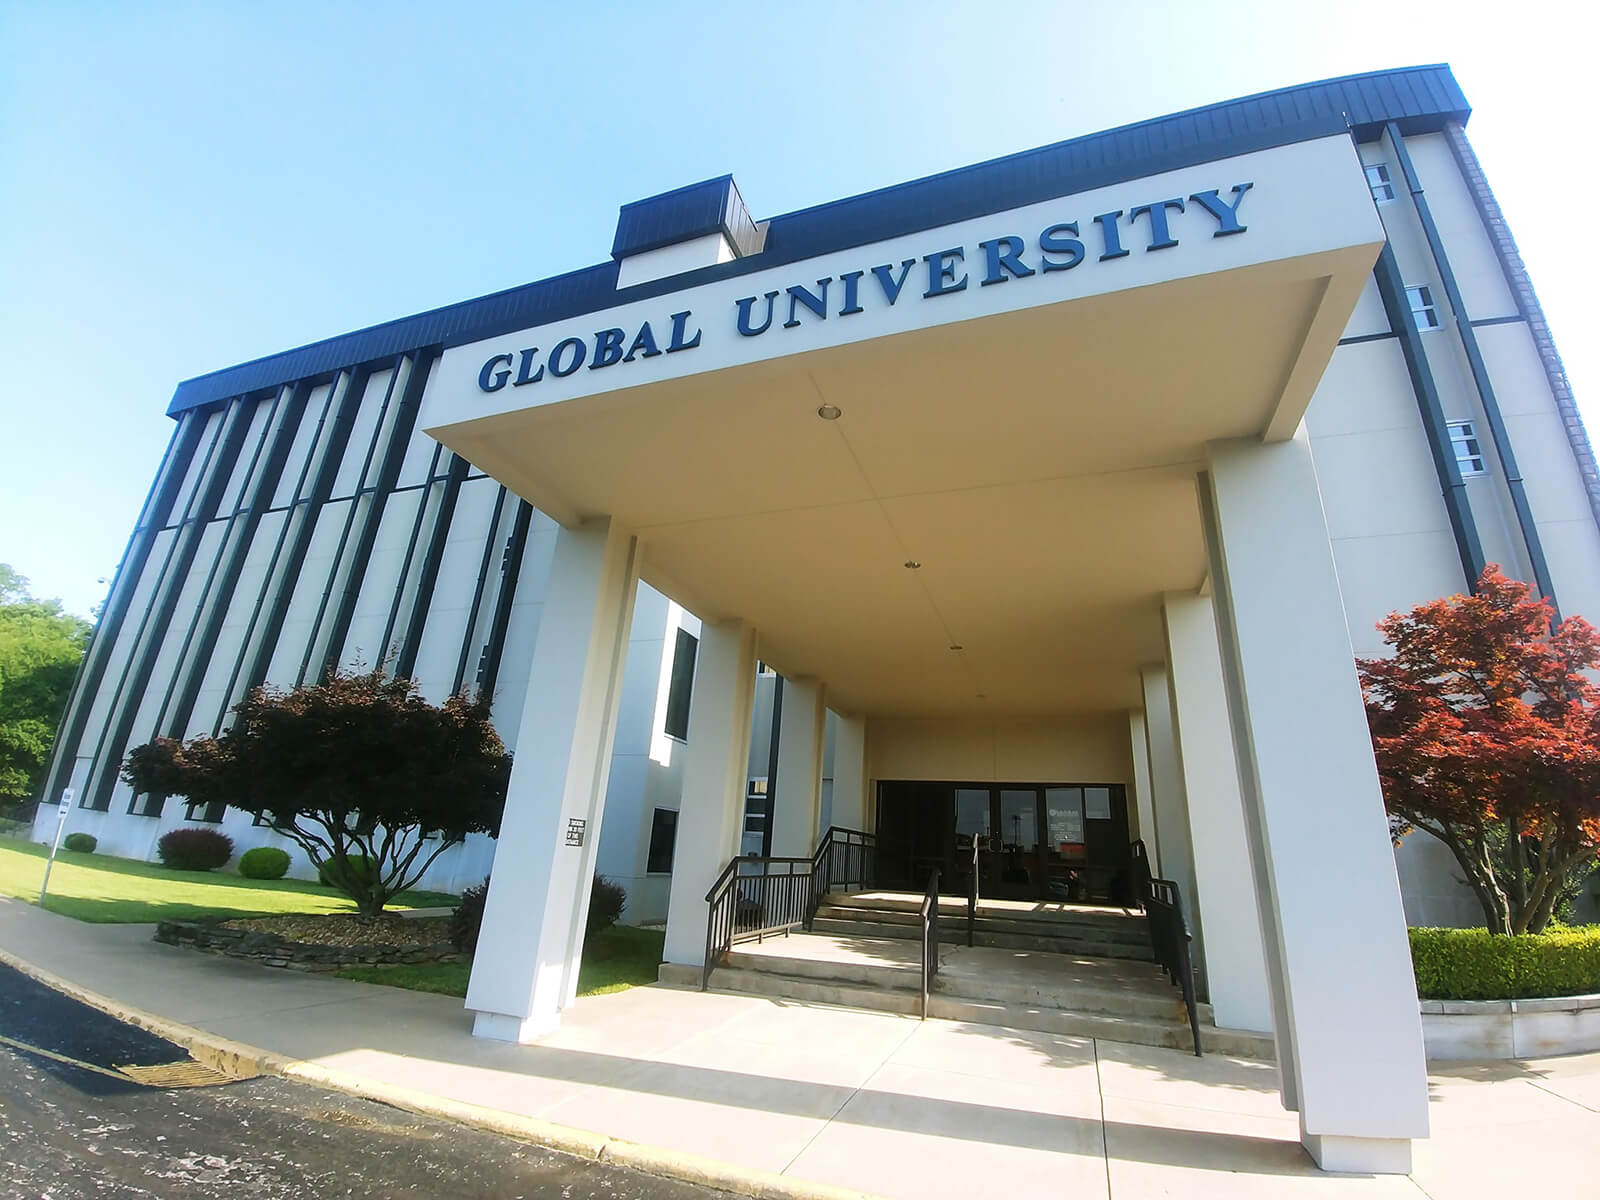 Global University International Headquarters